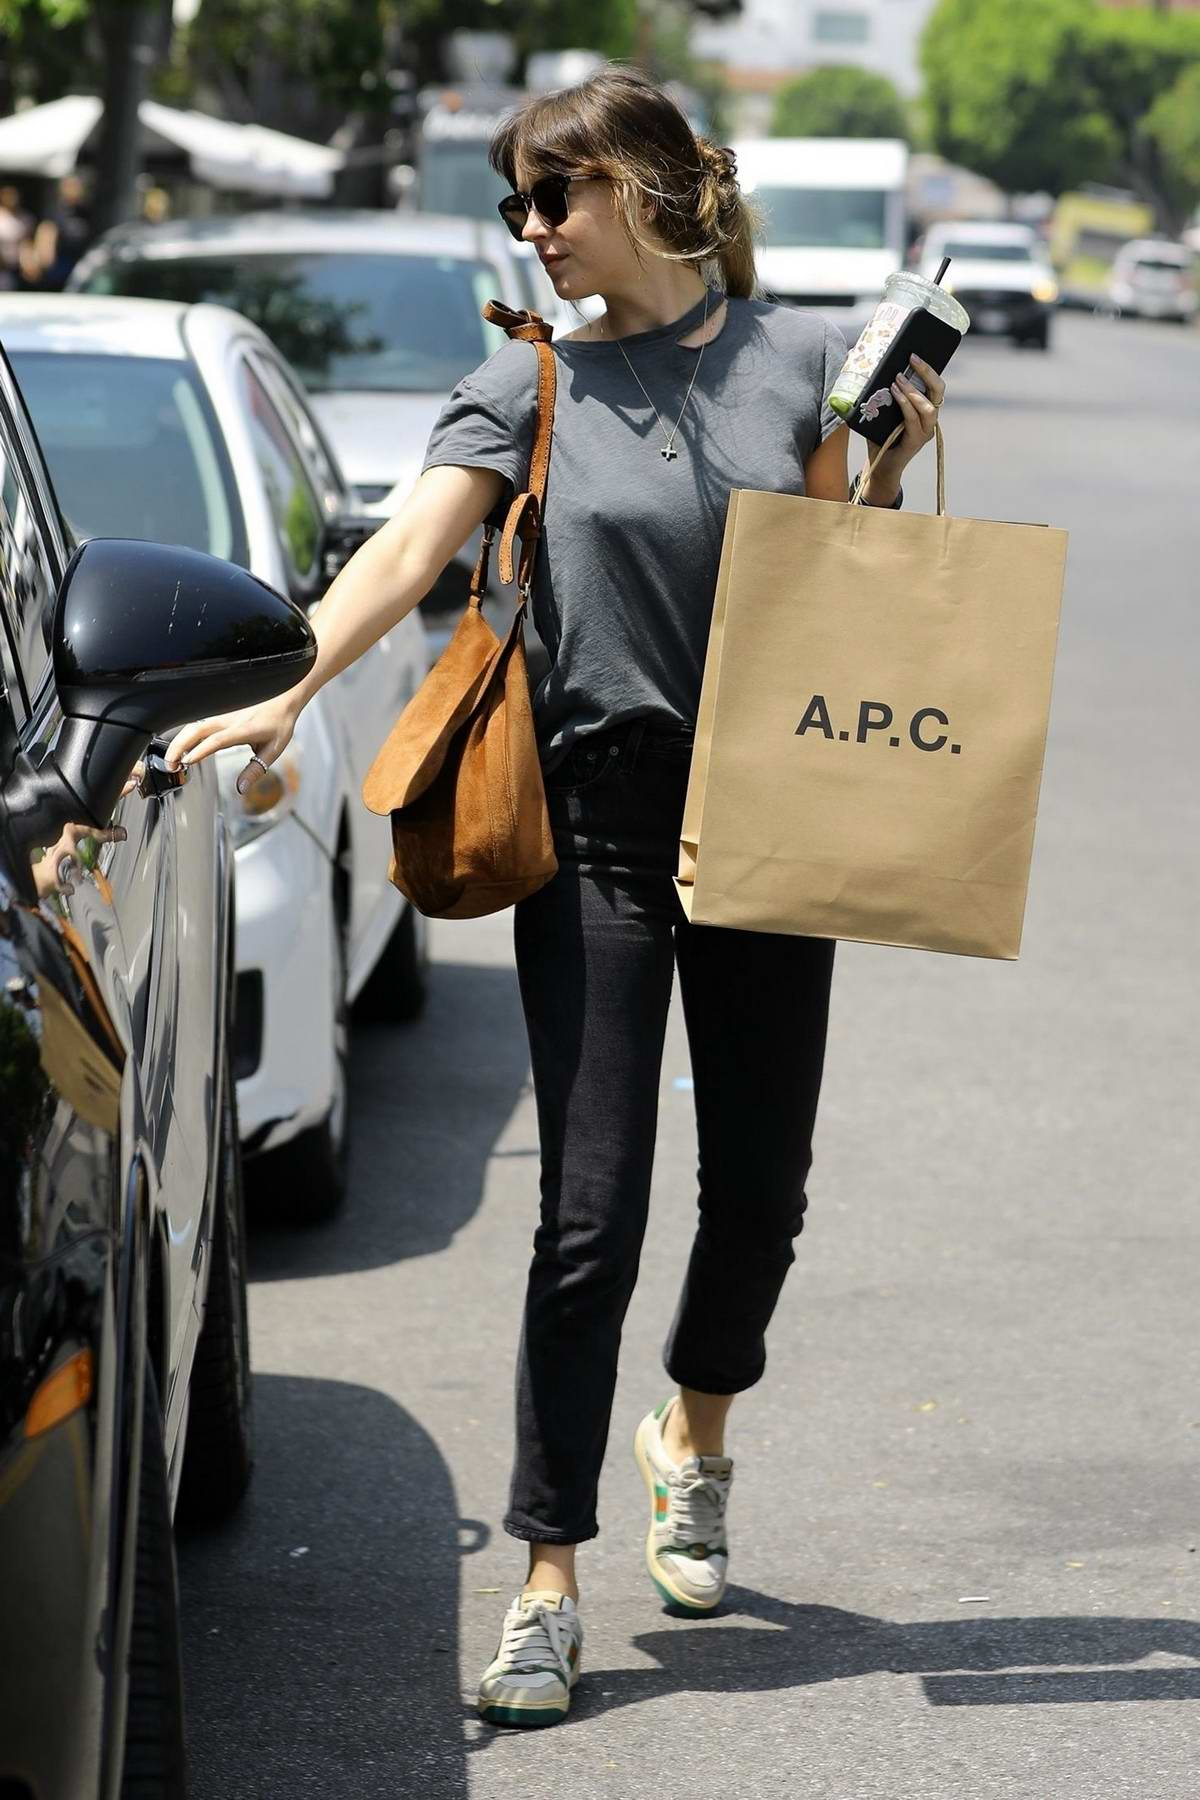 49716c90e dakota johnson wears grey top, black jeans and gucci sneakers during a  shopping trip to apc in los angeles-260419_7